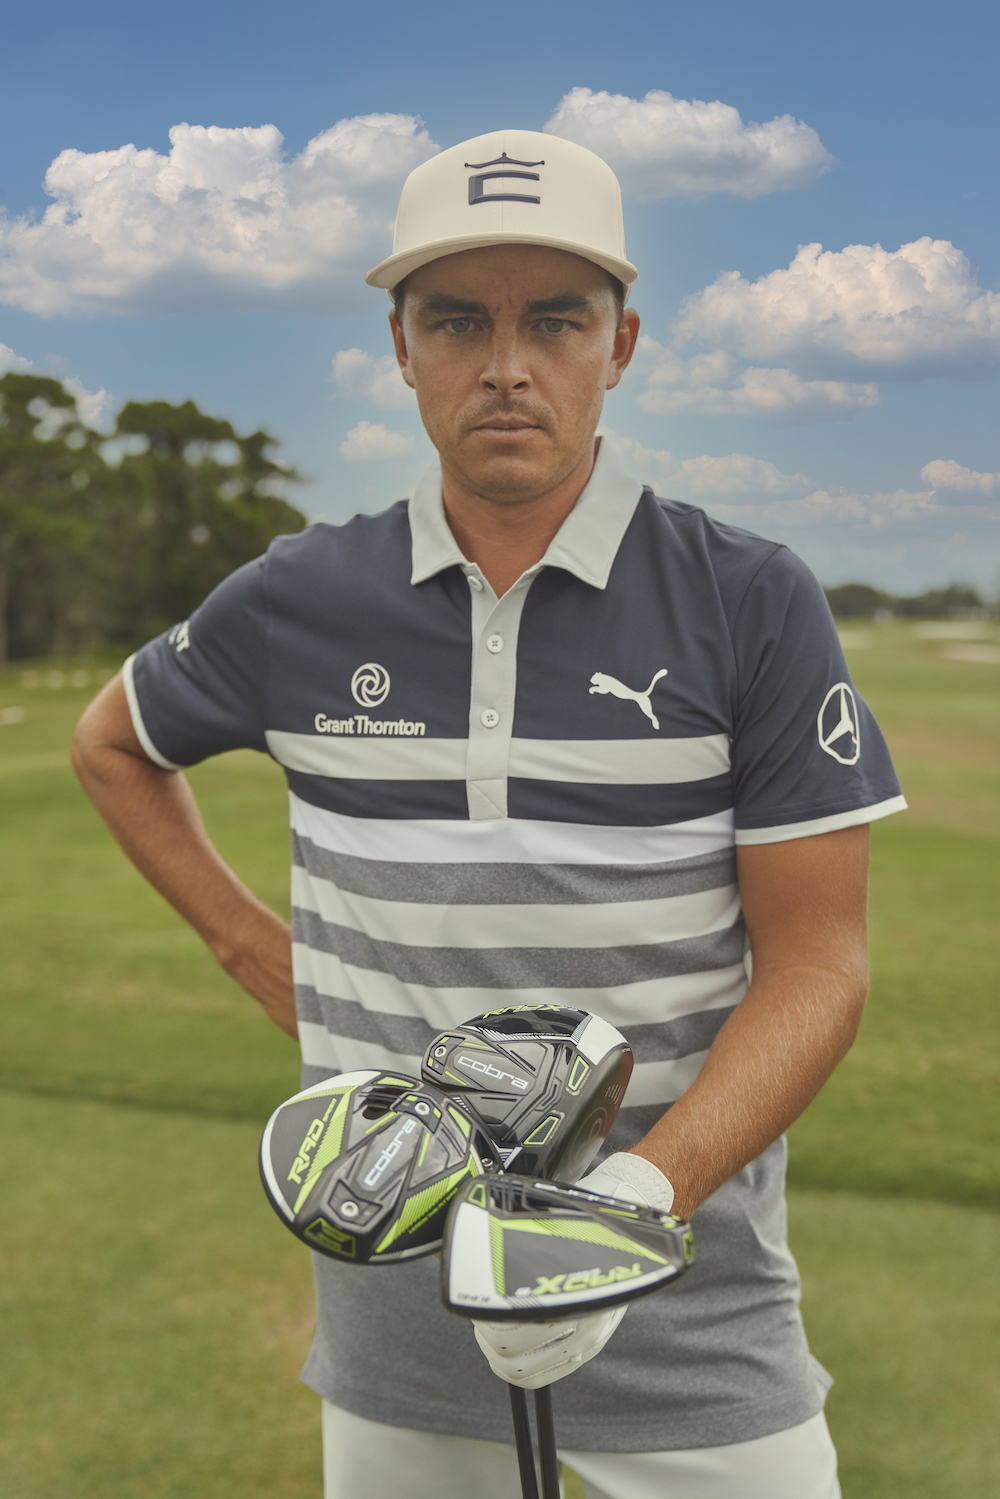 Rickie Fowler et les clubs Radpseed